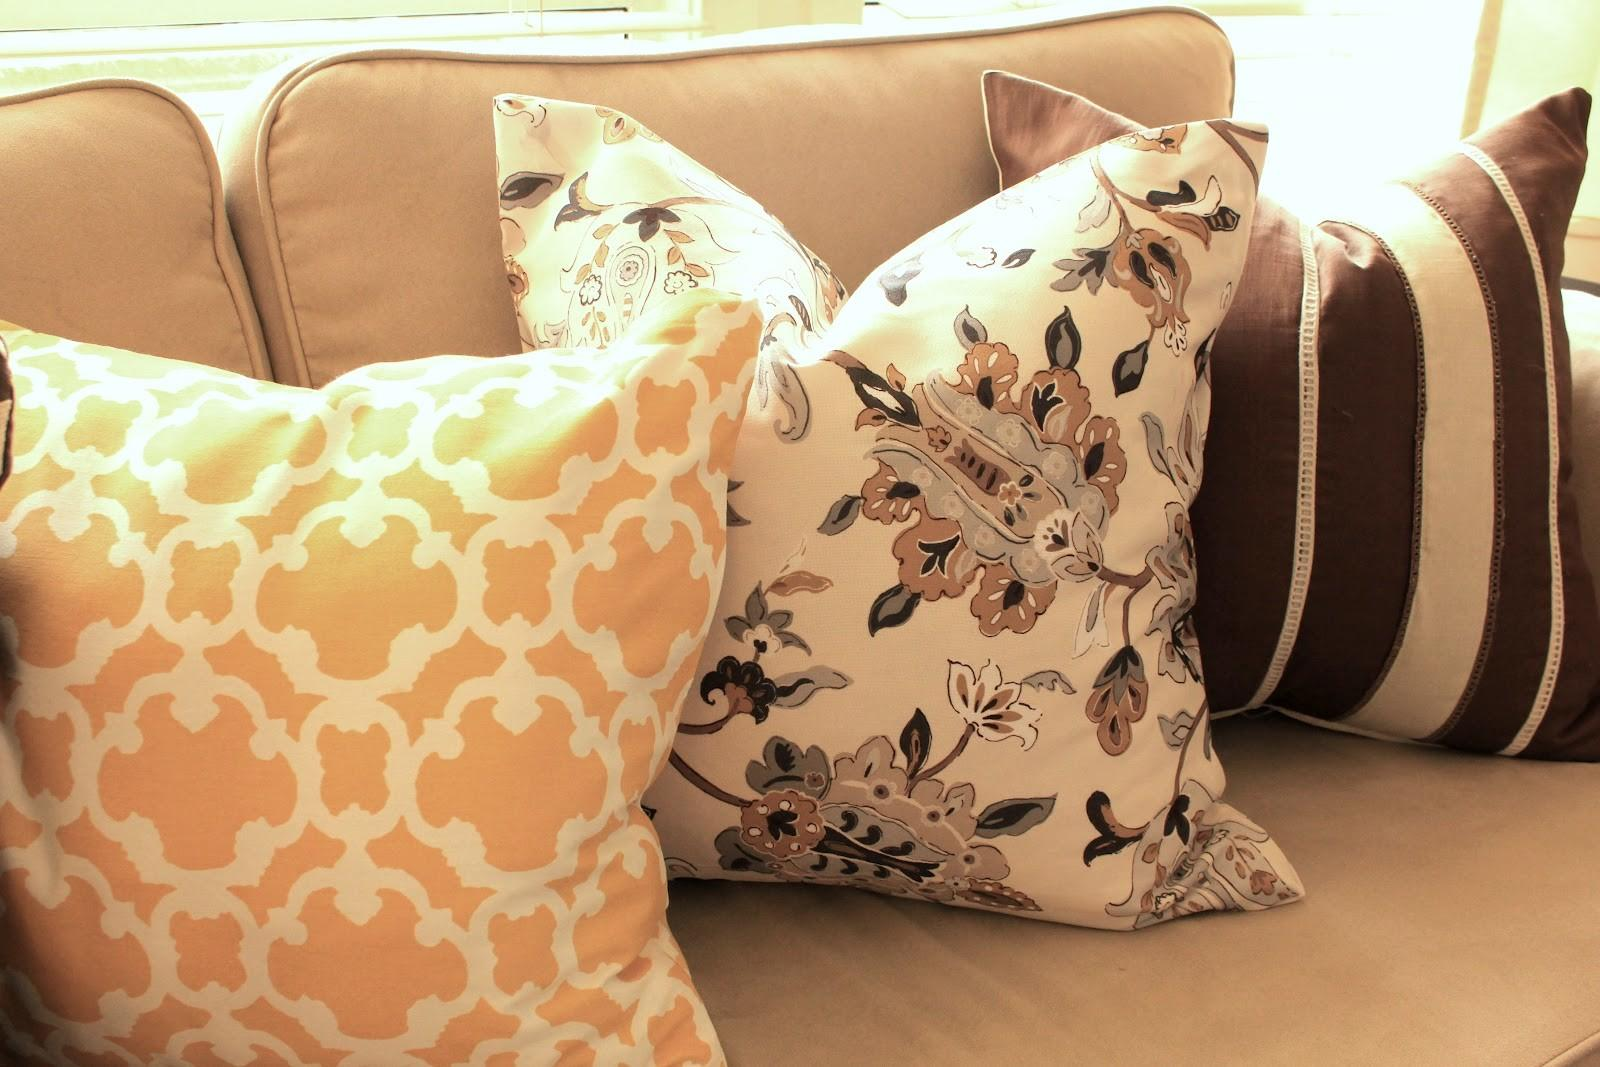 Cup Half Diy Sew Throw Pillows